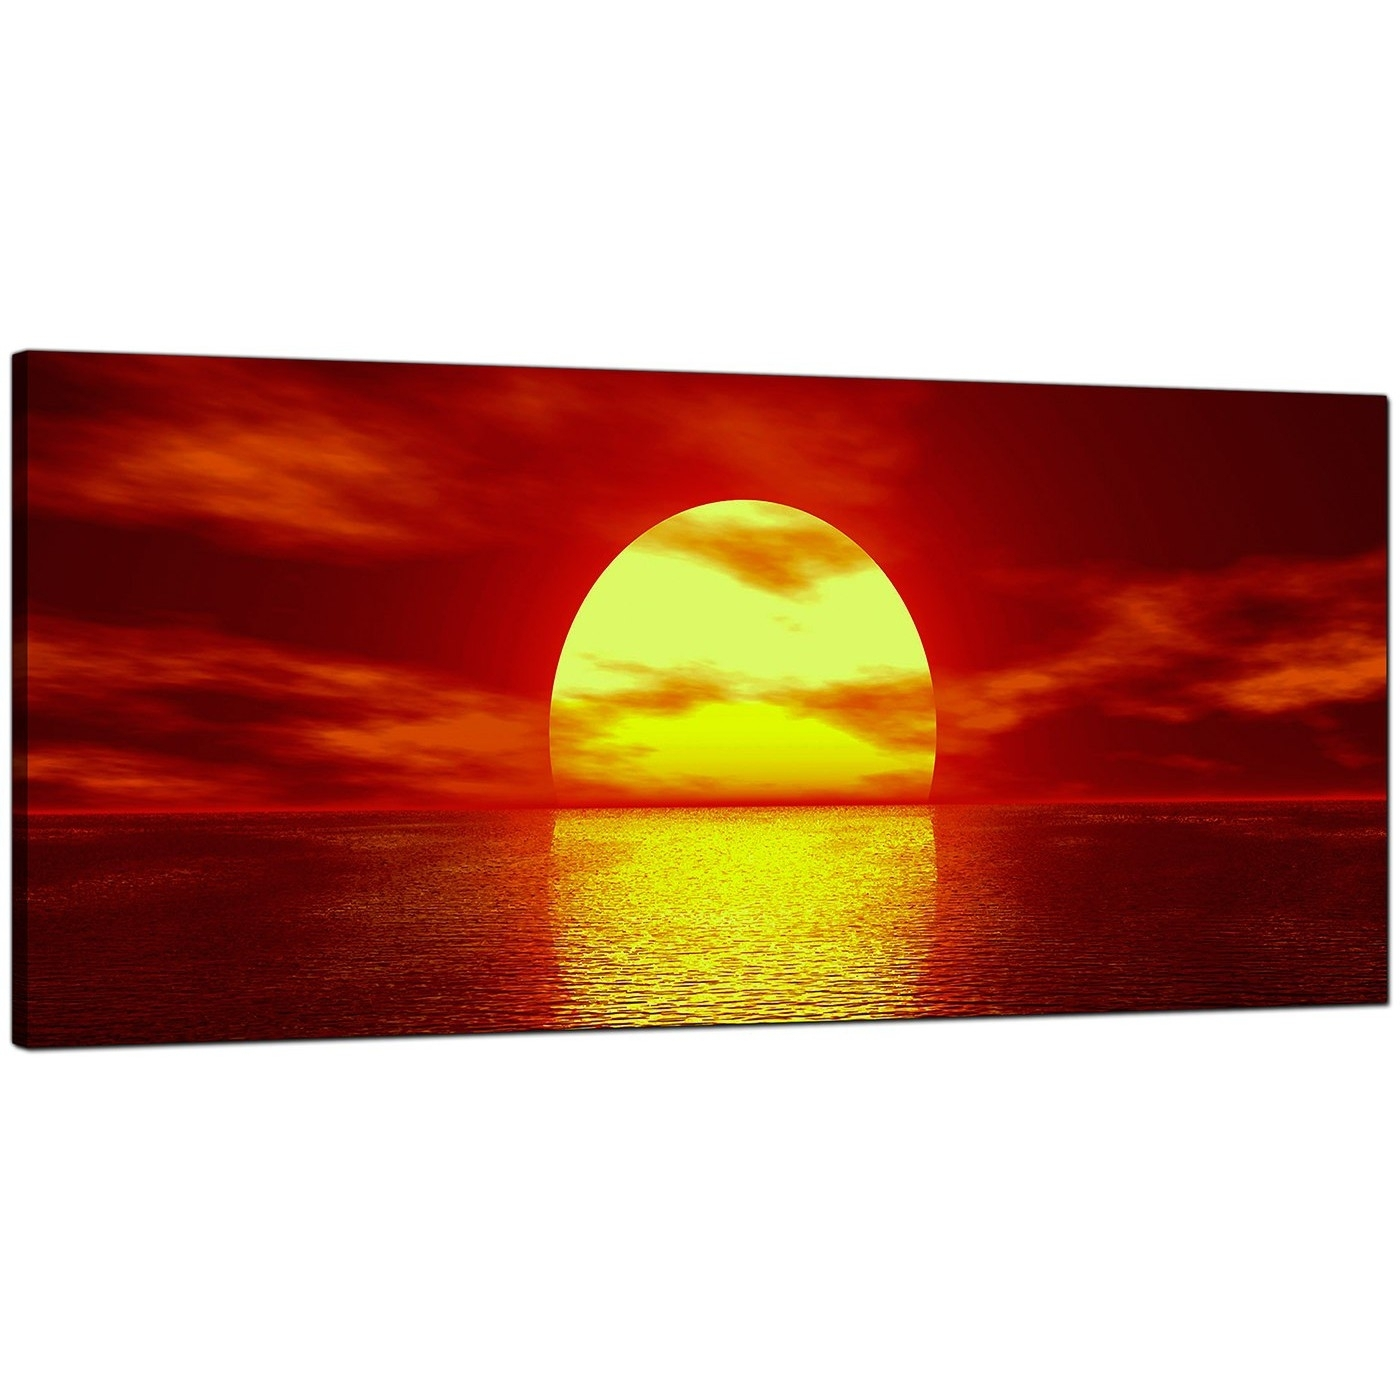 Modern Red Canvas Wall Art Of A Sea Sunset With Regard To Best And Newest Red Canvas Wall Art (Gallery 10 of 15)